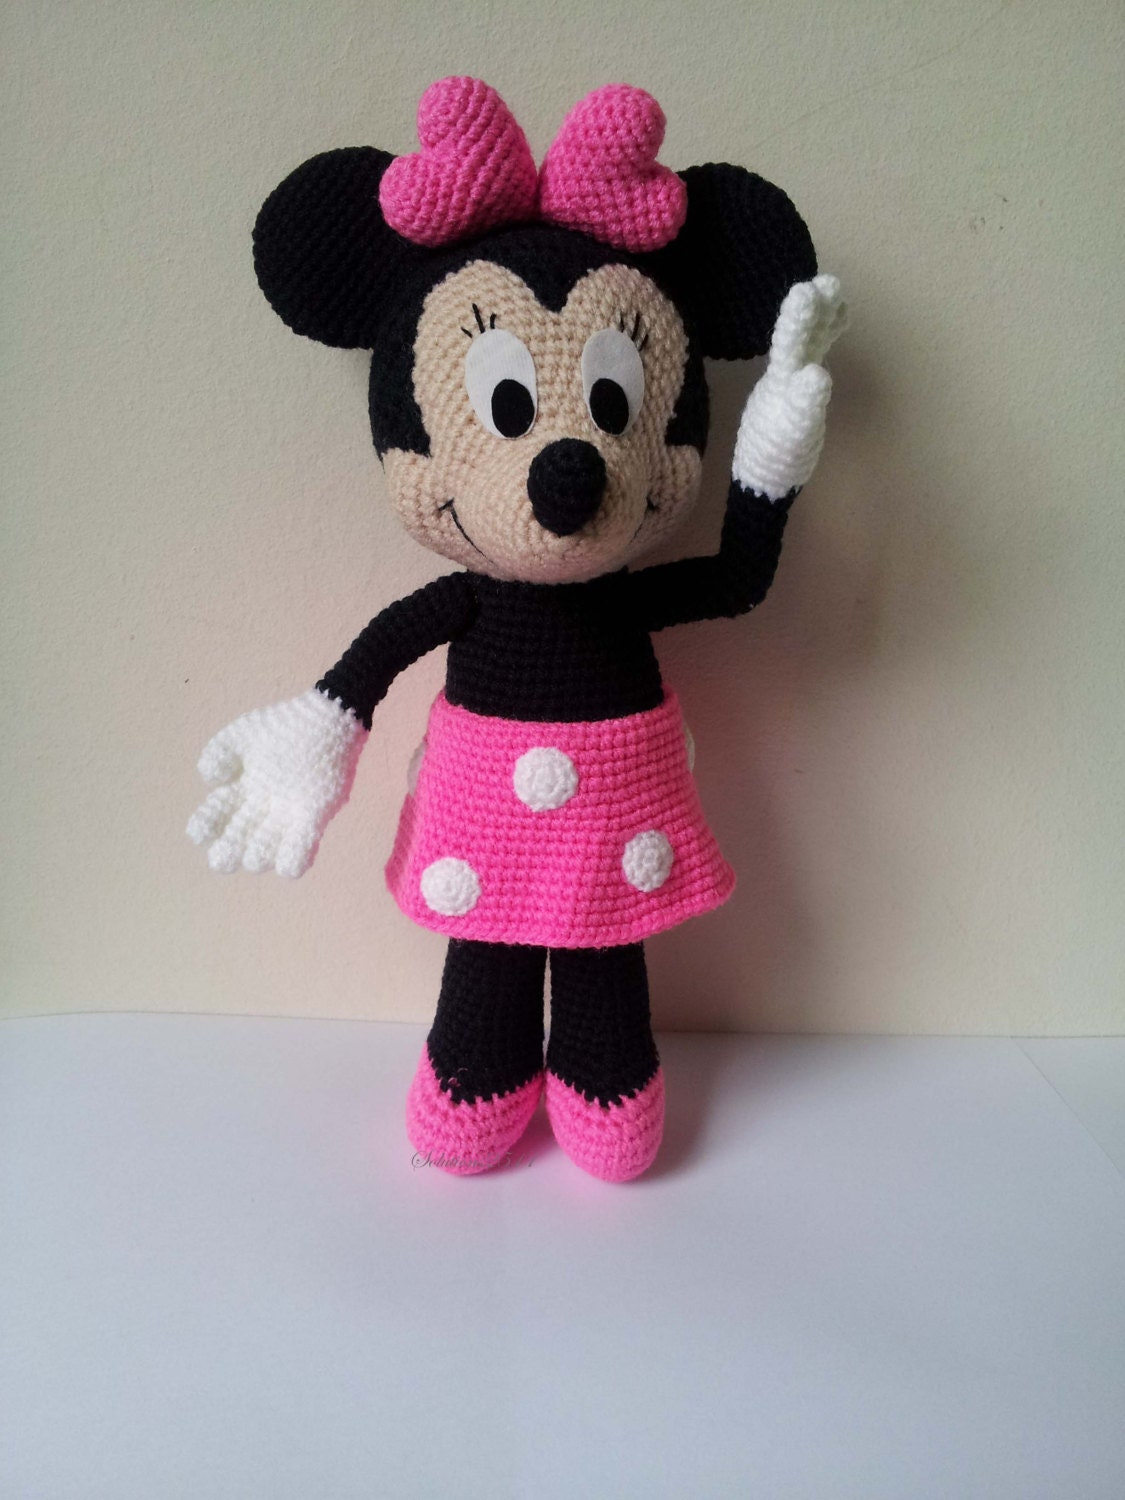 Crochet Patterns For Minnie Mouse : Minnie Mouse crochet doll birthday gift christmas giftBaby